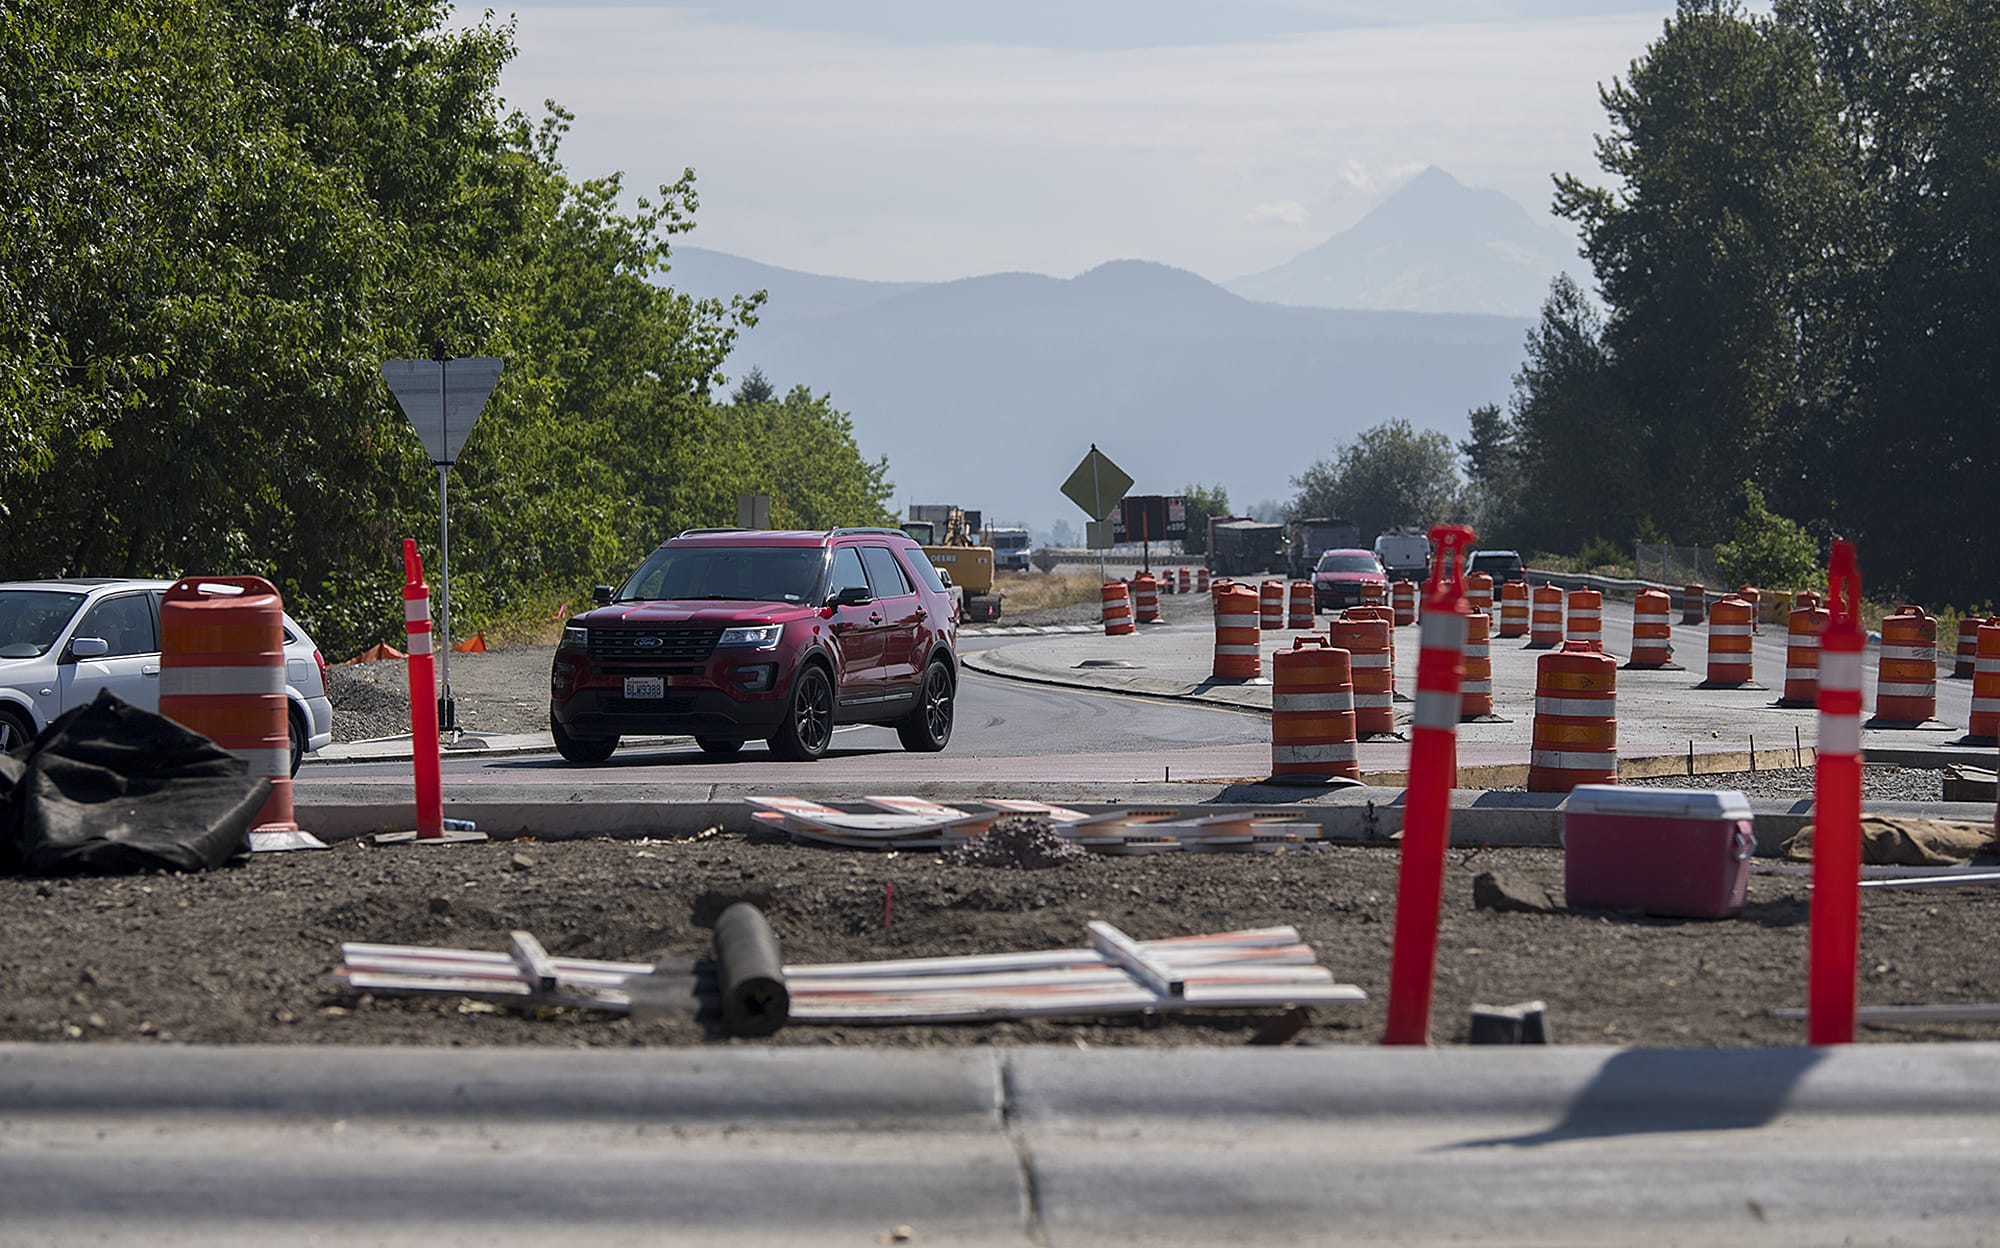 Expect Highway 14 delays near Washougal starting late Thursday night